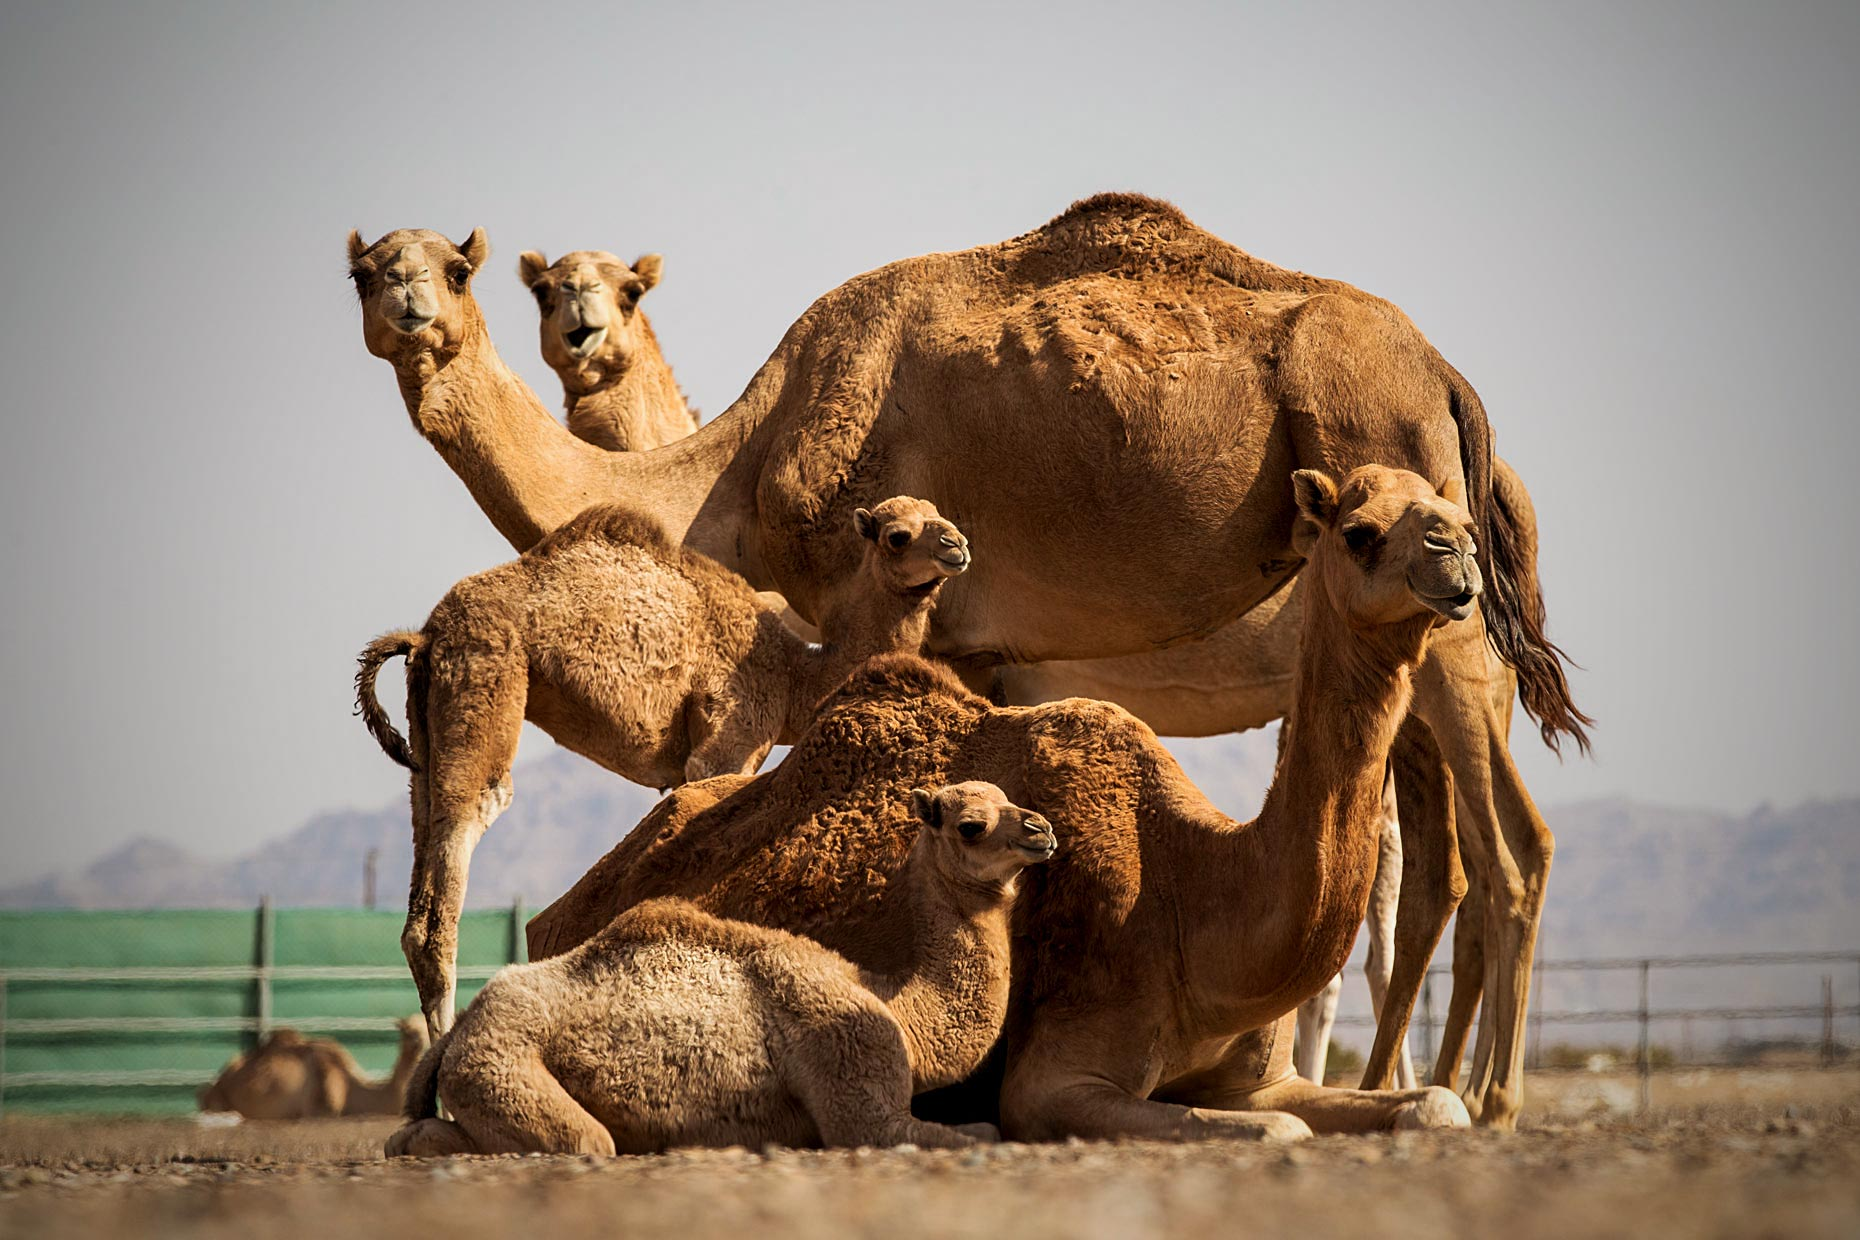 Wouter-Kingma-Web-Camel-Library-14